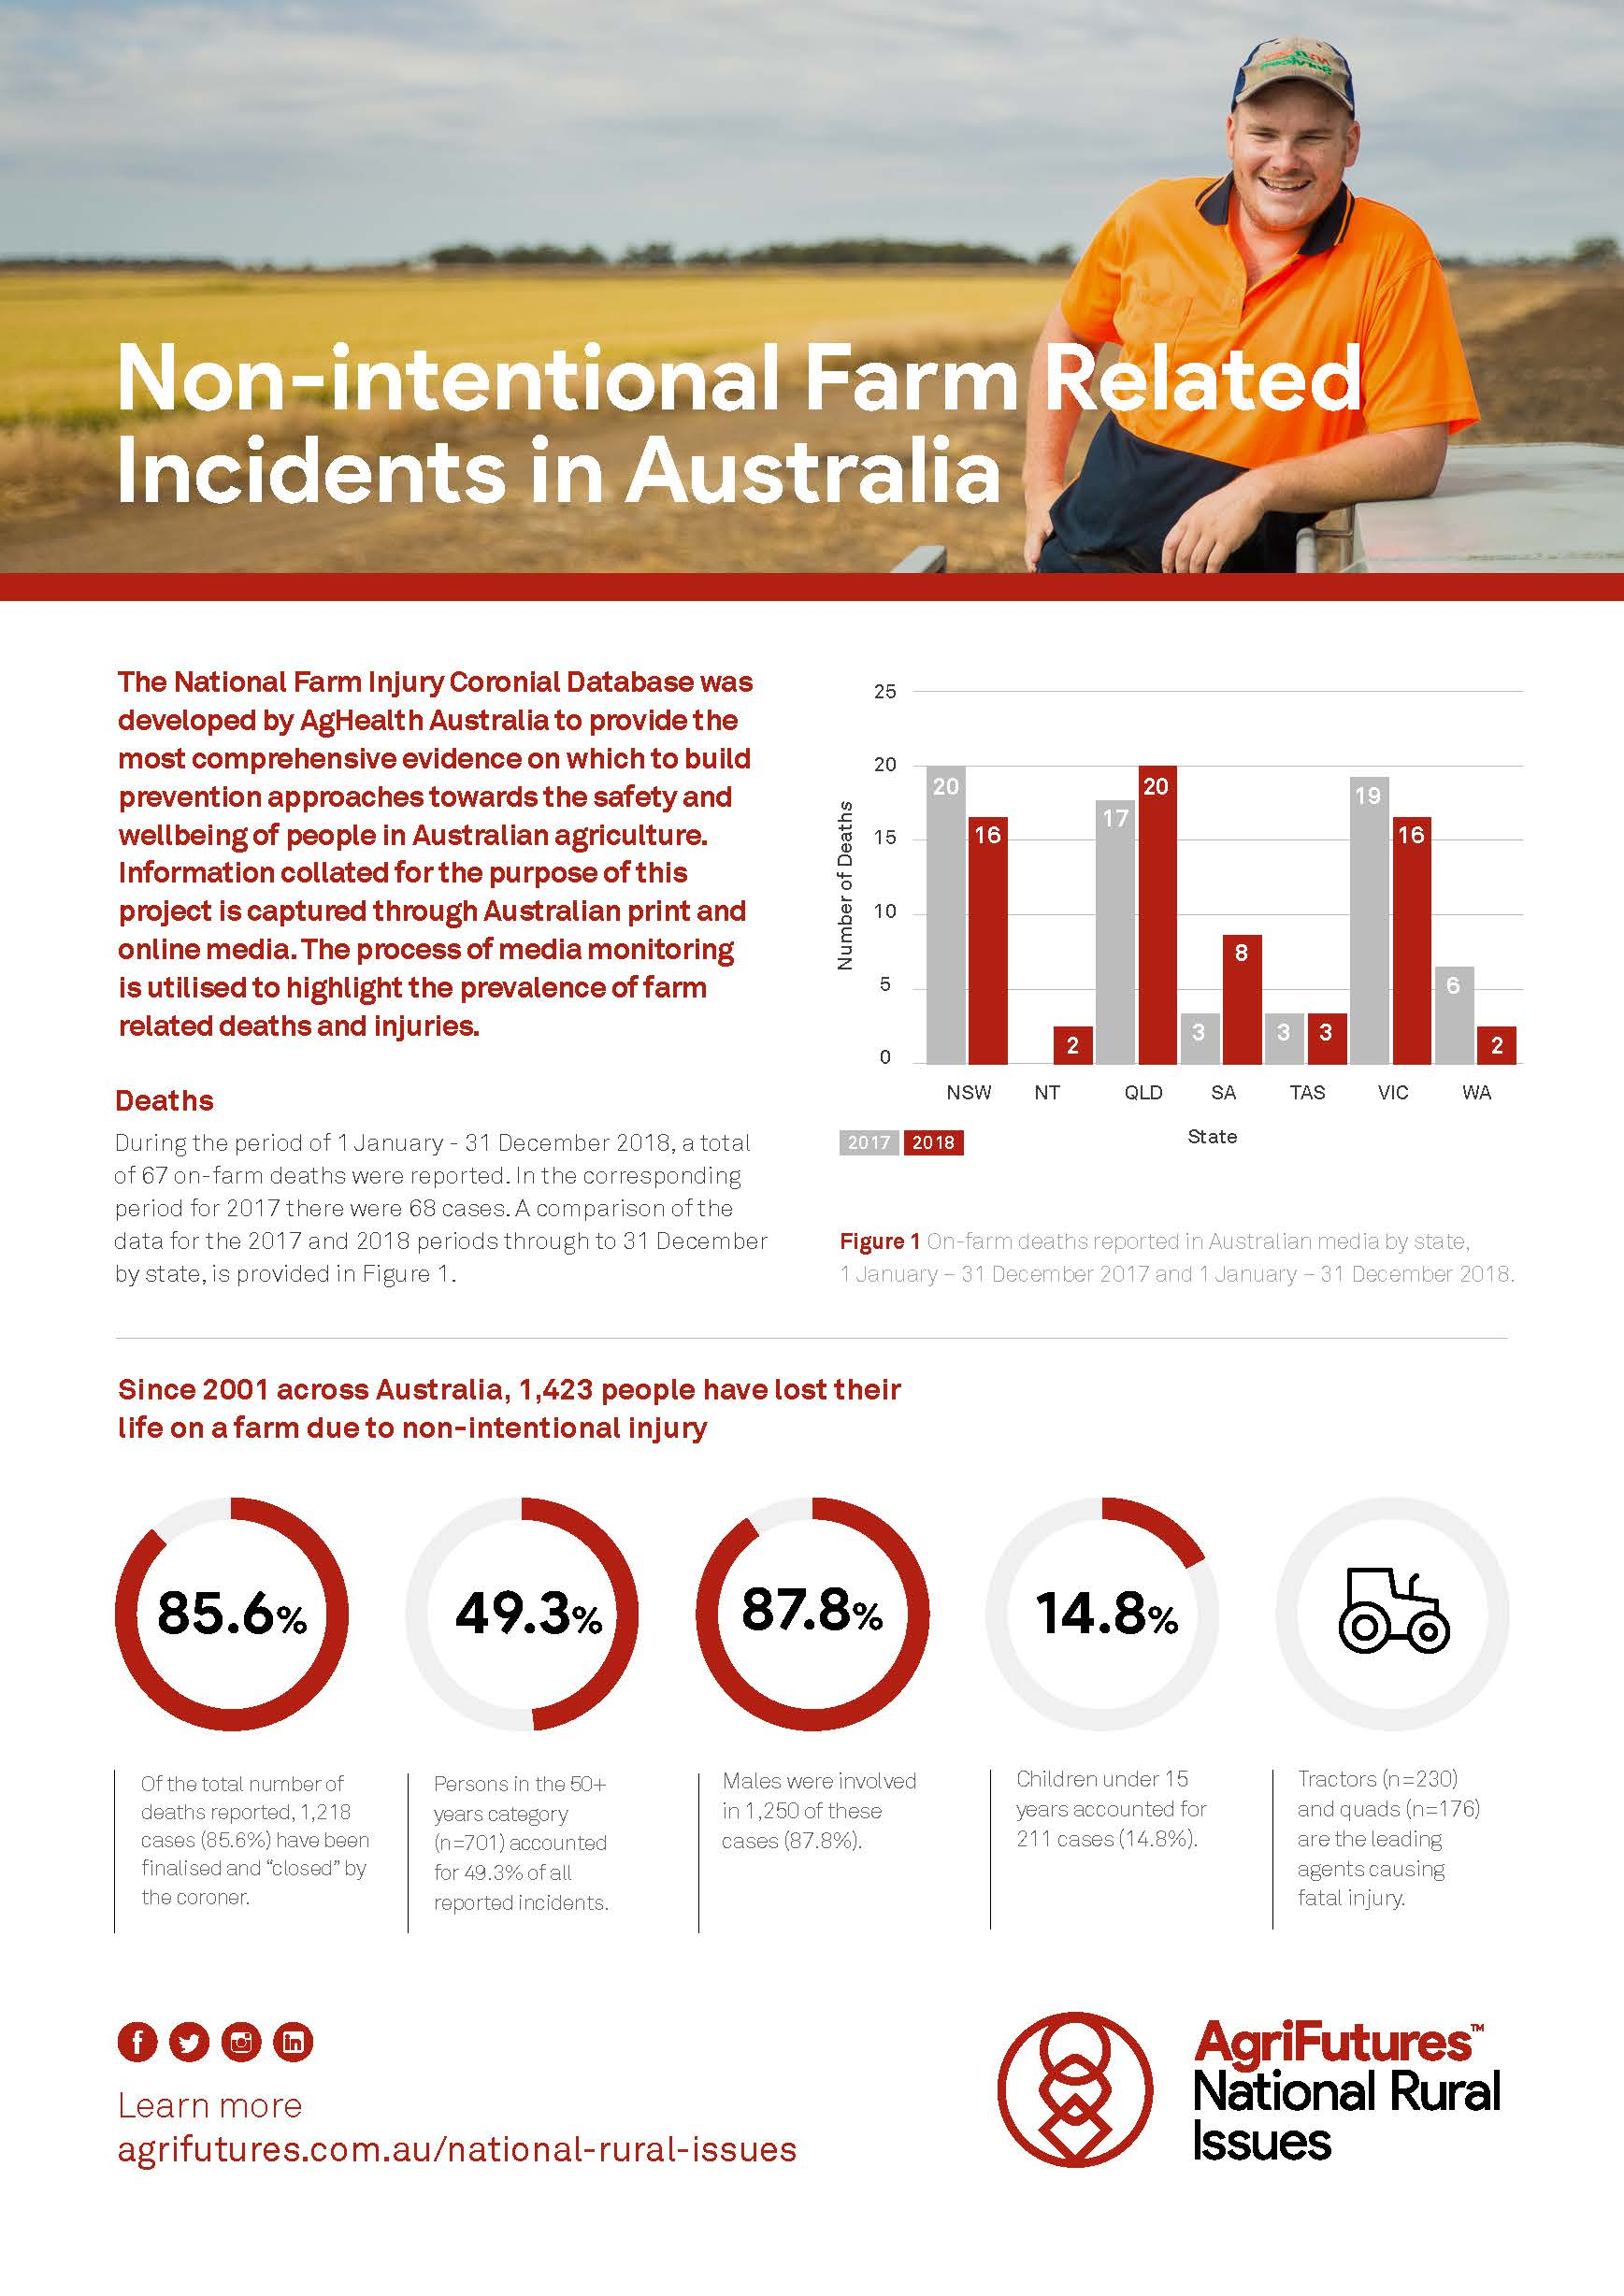 Non-intentional Farm Related Incidents in Australia - image